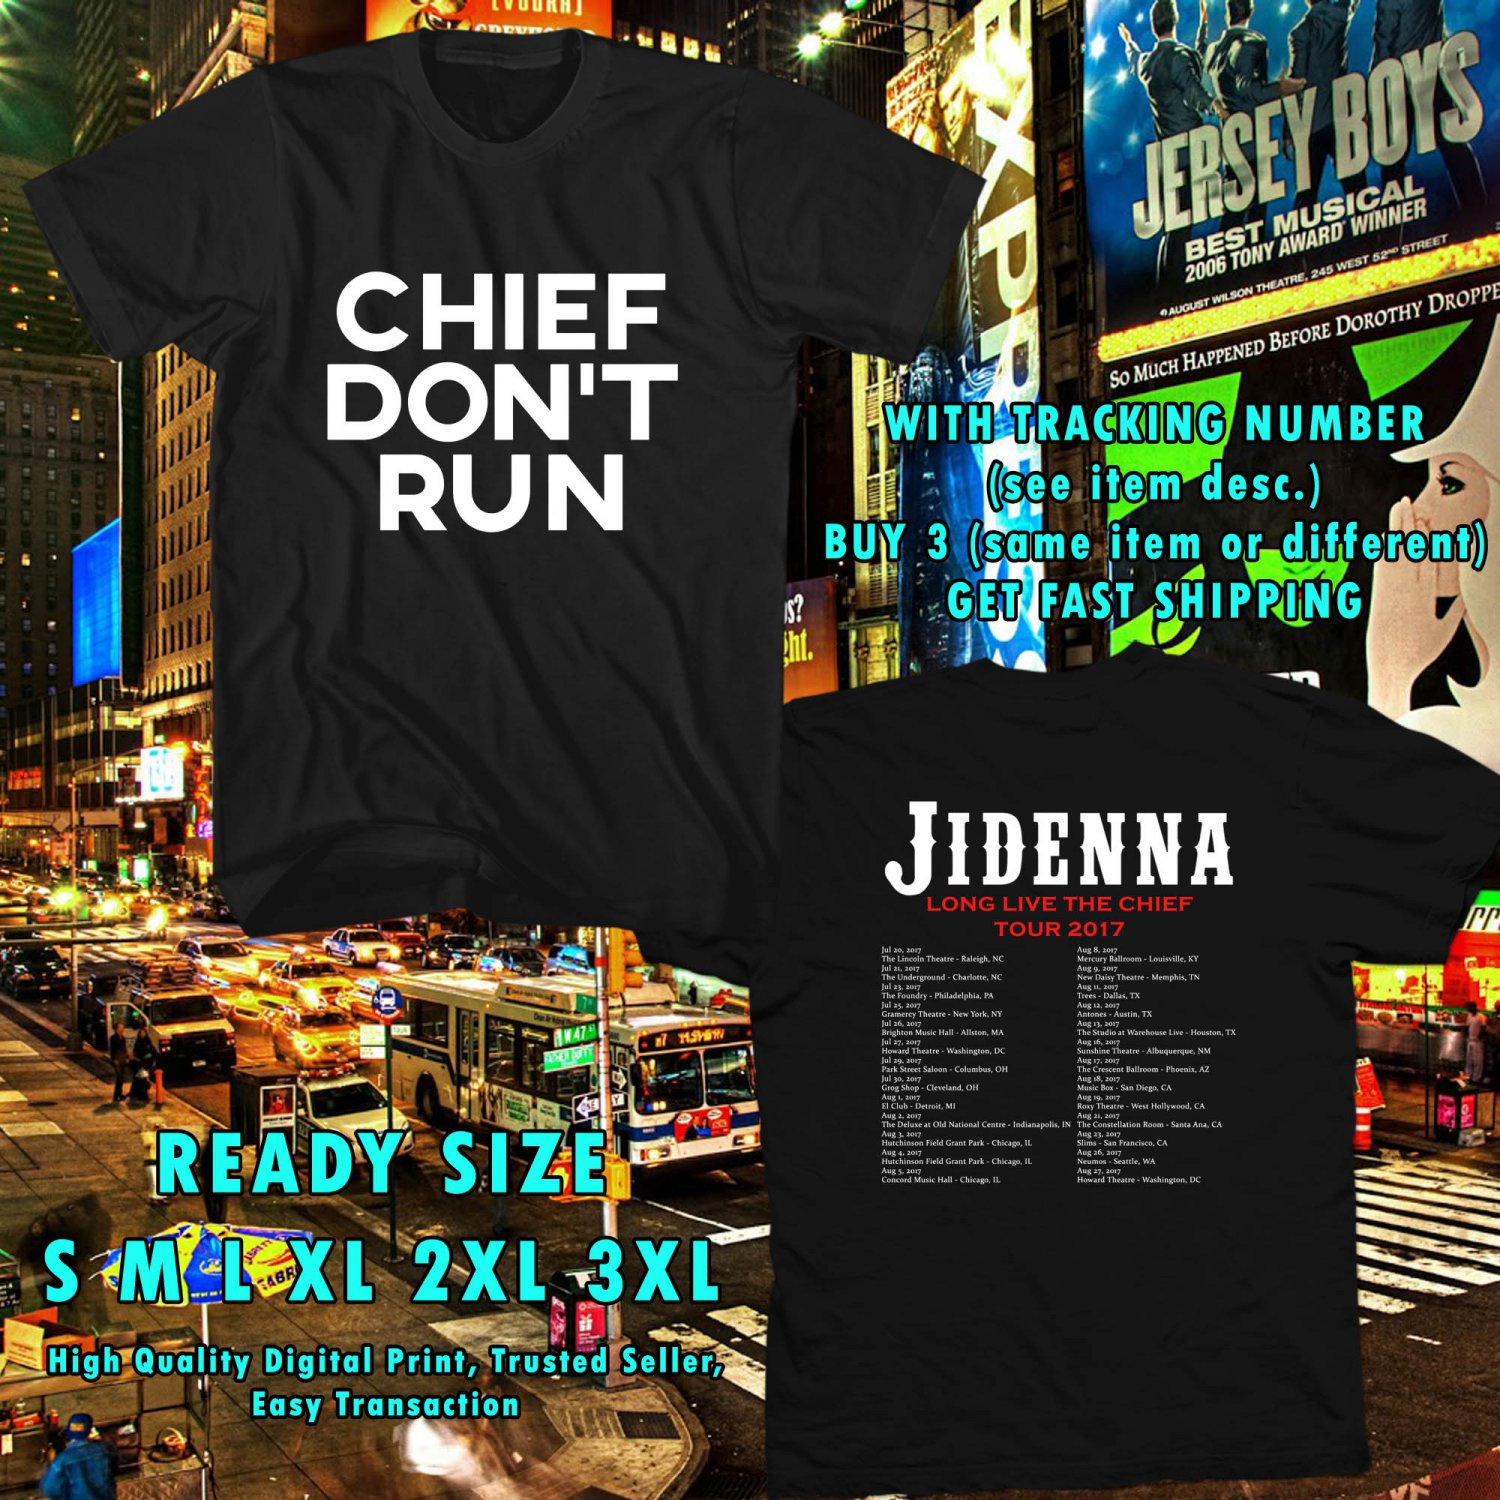 HITS JIDENNA LONG LIVE THE CHIEF TOUR 2017 BLACK TEE'S 2SIDE ASTR 113